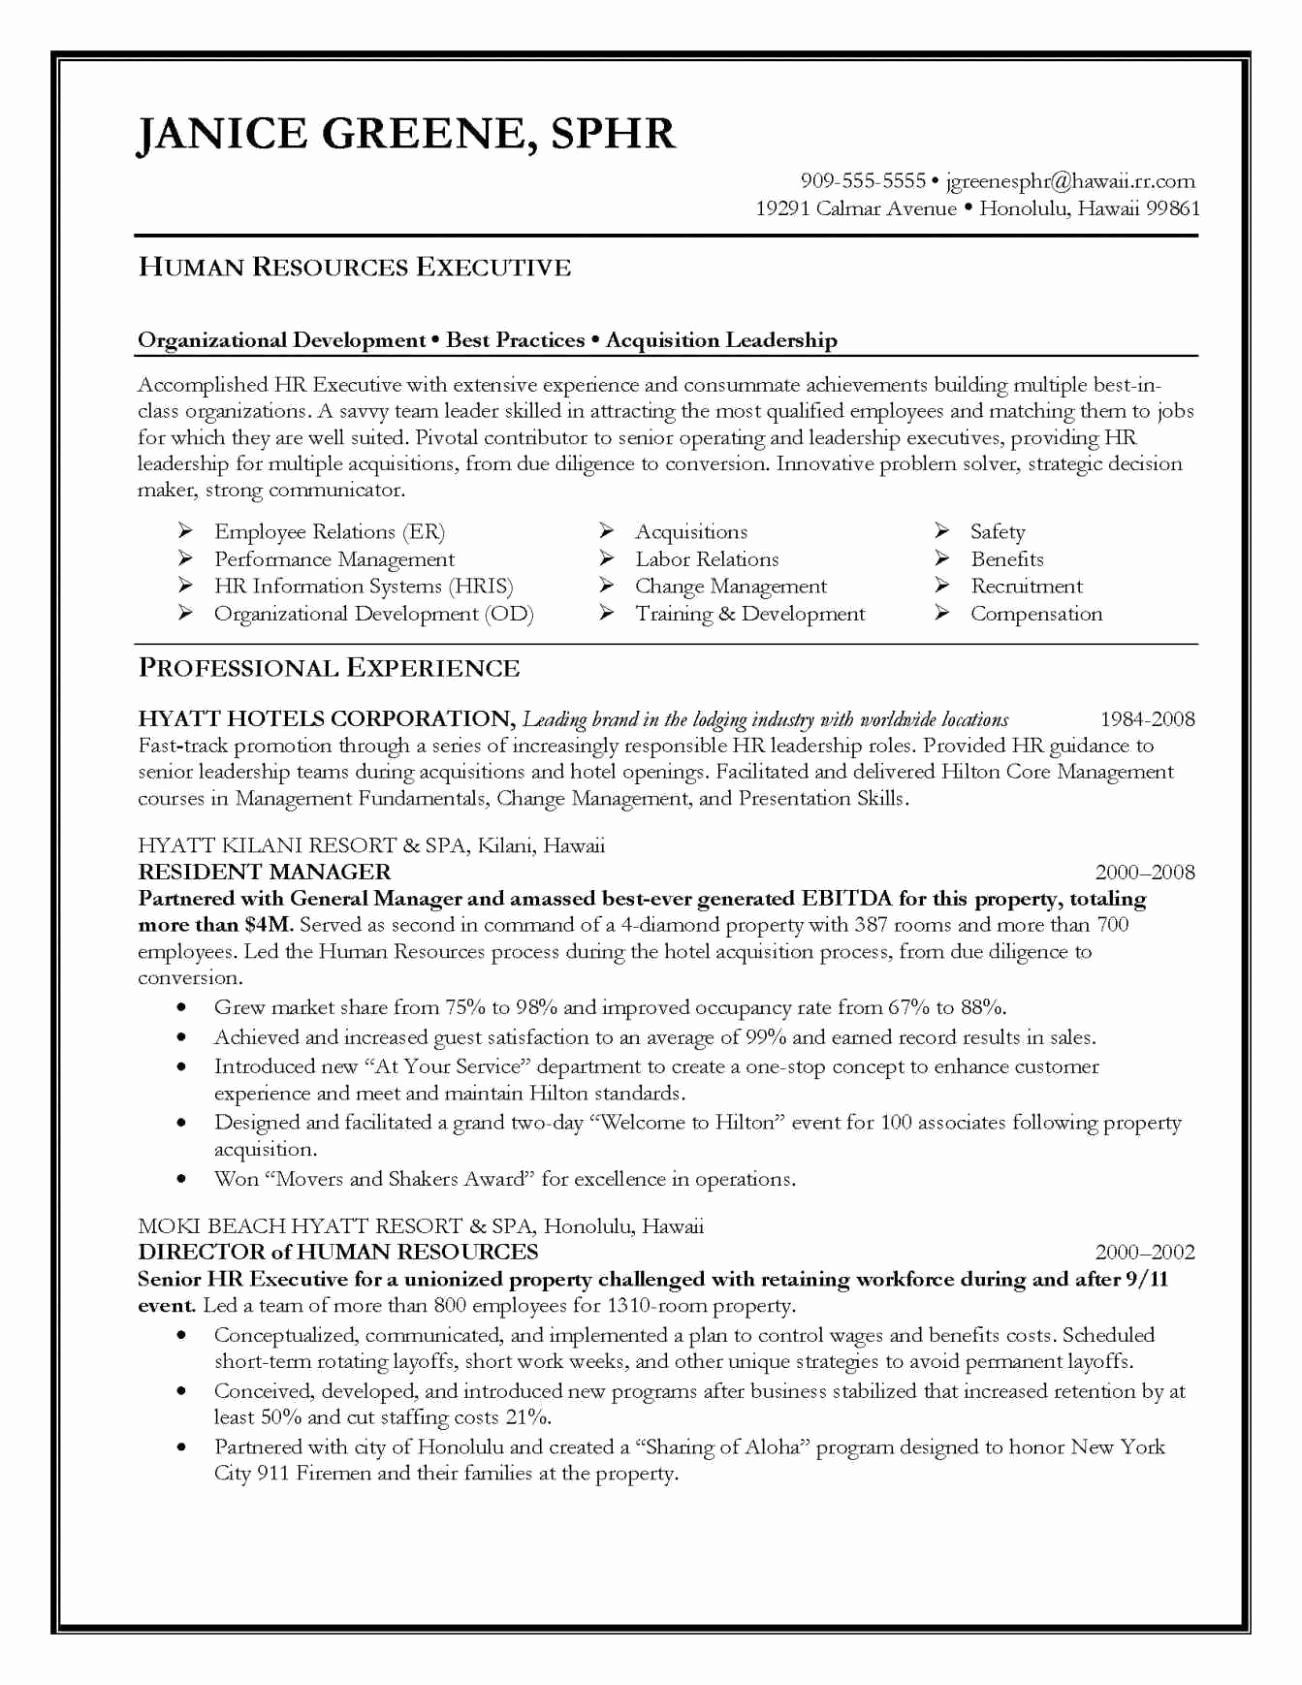 New Sample Resume Summary for Career Change